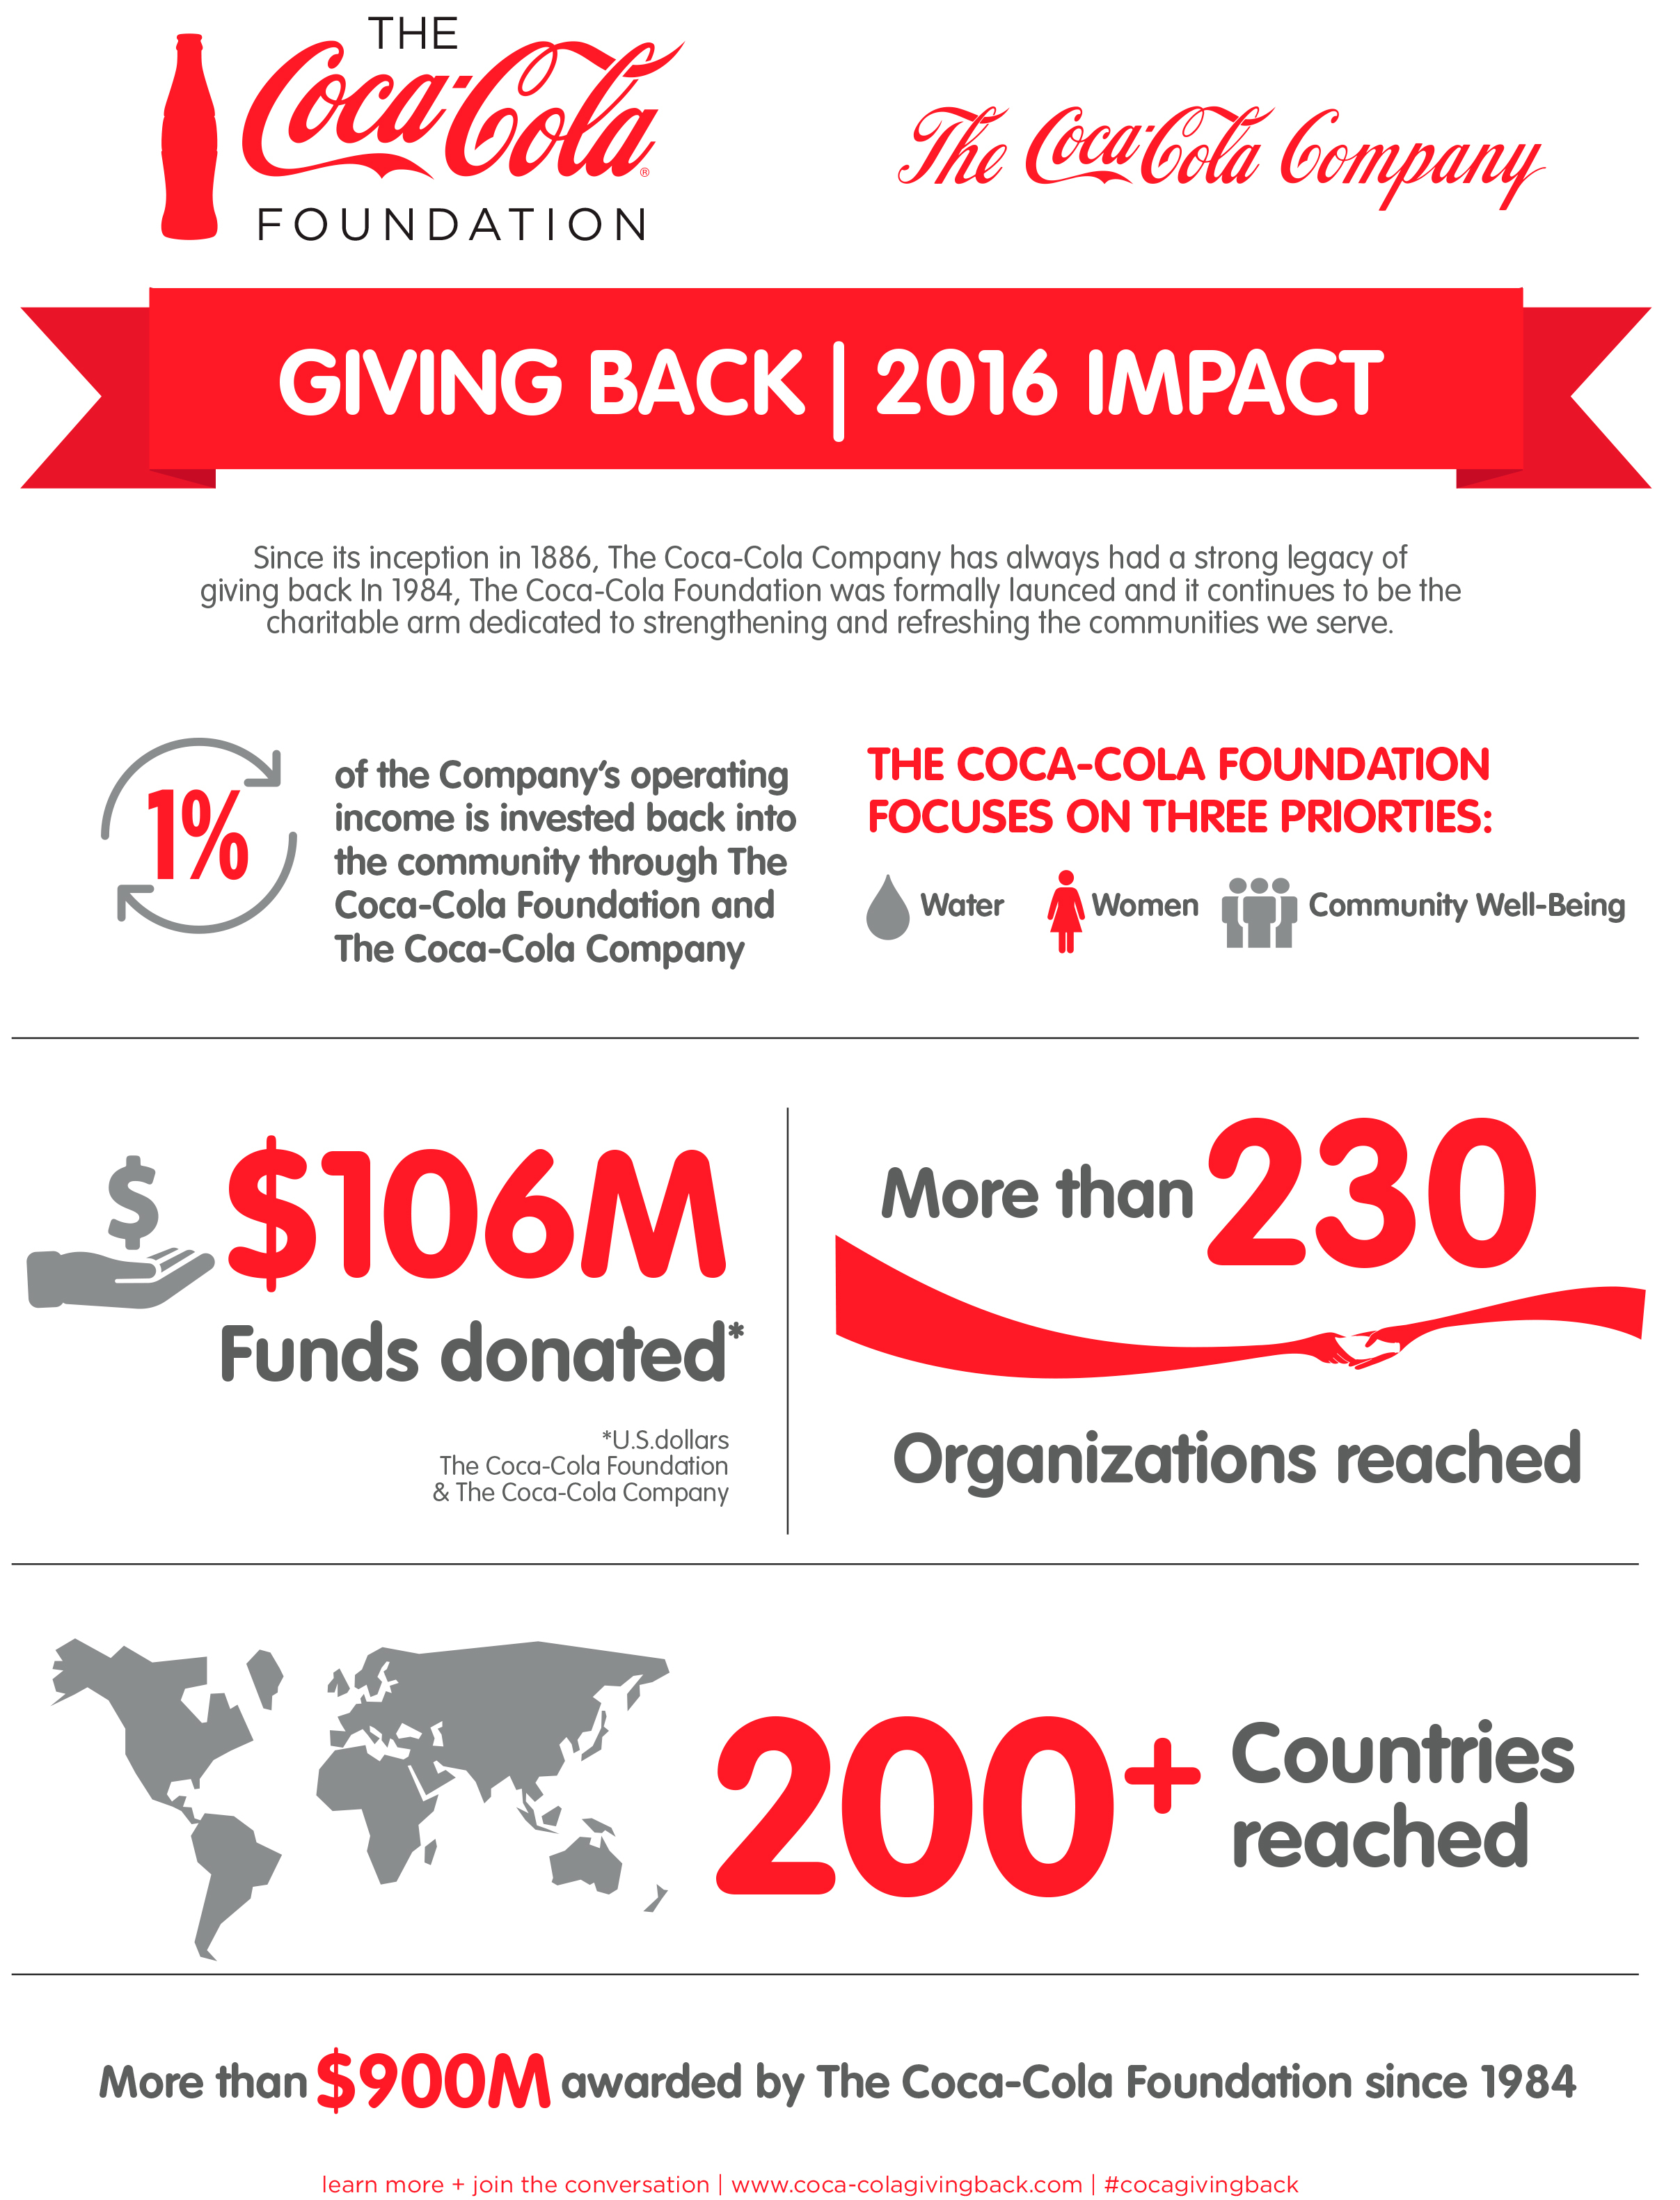 Coca-Cola Giving Back 2016 (Graphic: Business Wire)